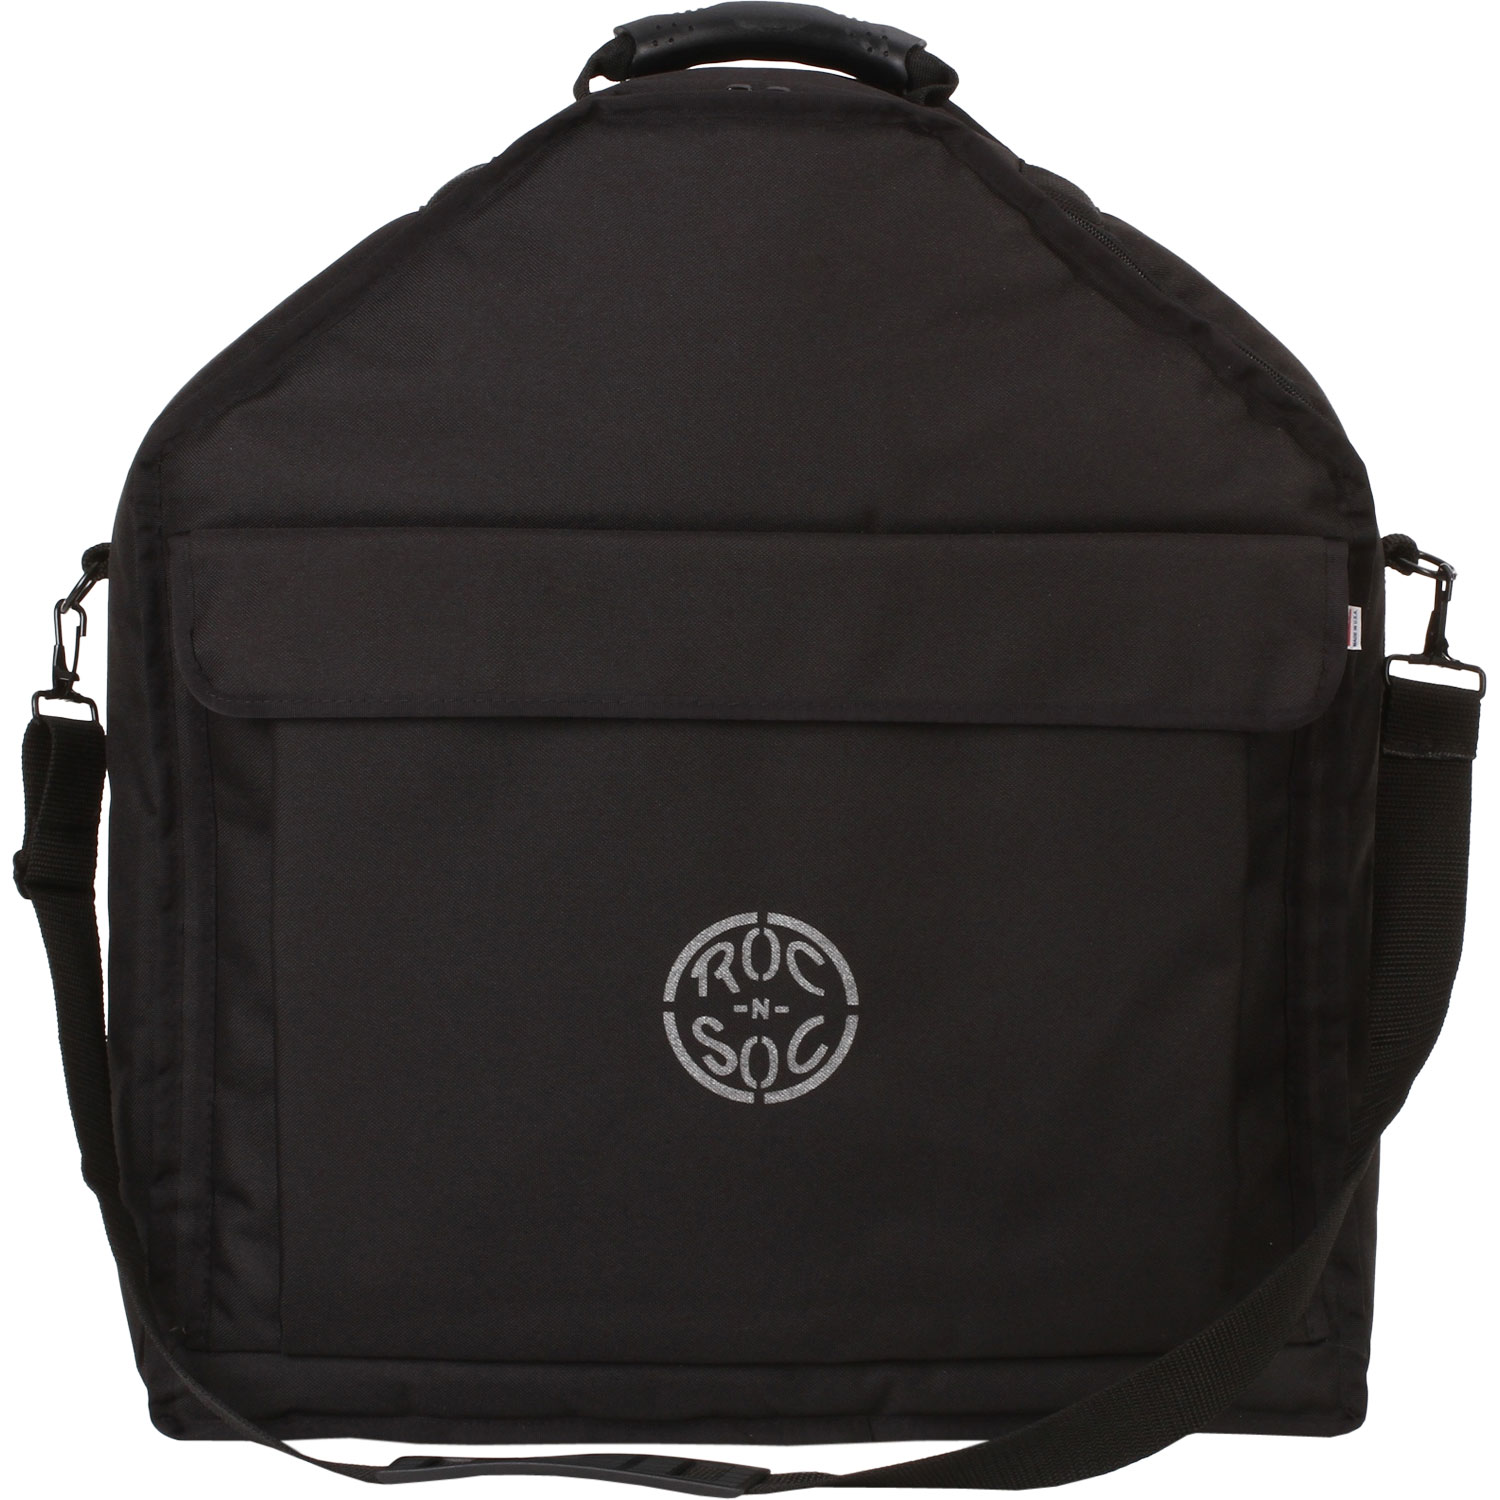 Roc-n-Soc Throne Bag